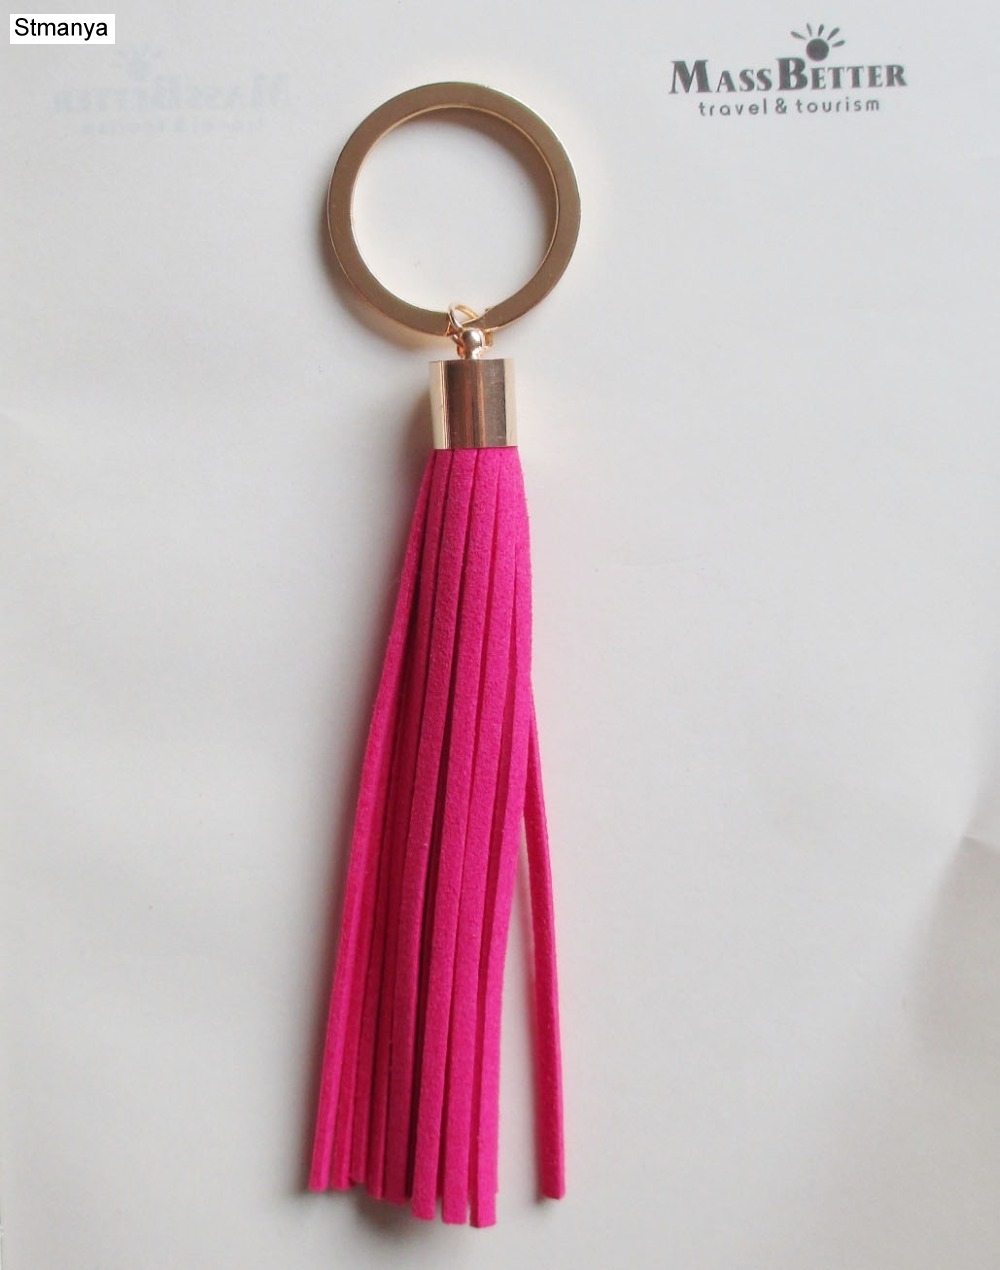 Fashion Tassel Key Chain Women bag charm accessories Tassel Key Holder Korean velvet leather Car Key Ring gift jewelry <font><b>17014</b></font> image